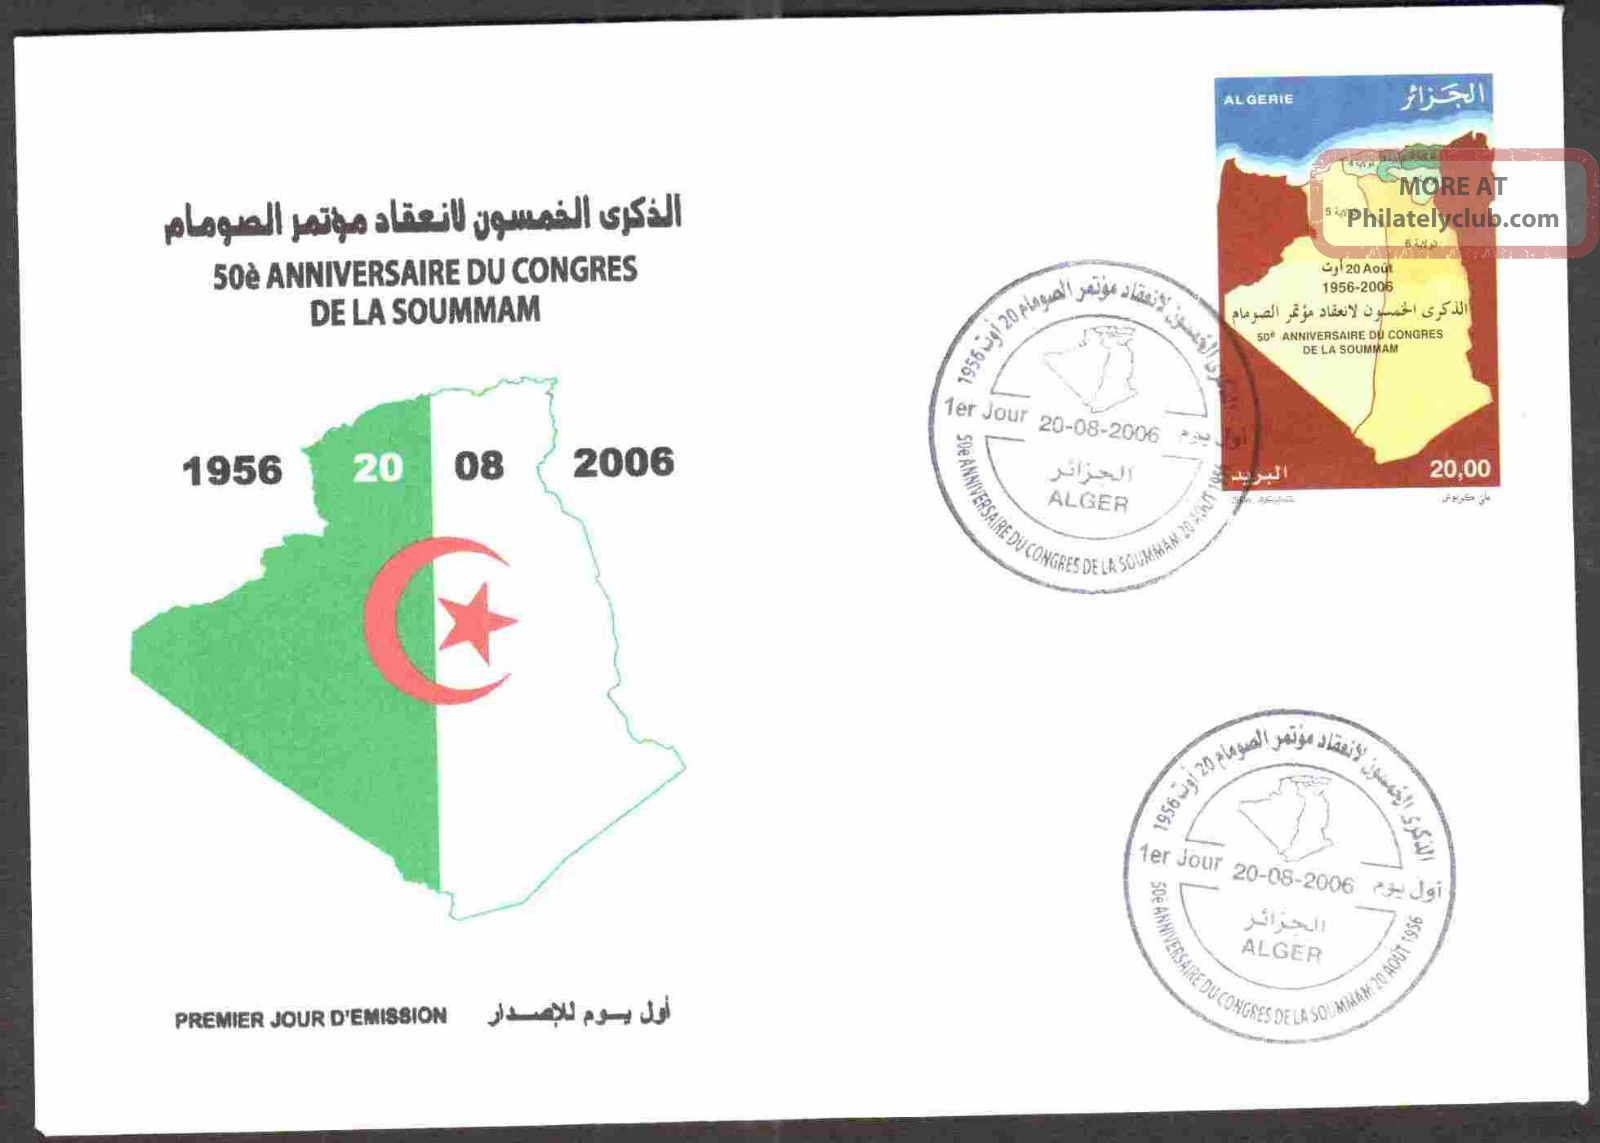 Algeria 2006 - Soummam Revolution Congress,  Scott 1377 - Fdc,  Topical Canc Topical Stamps photo